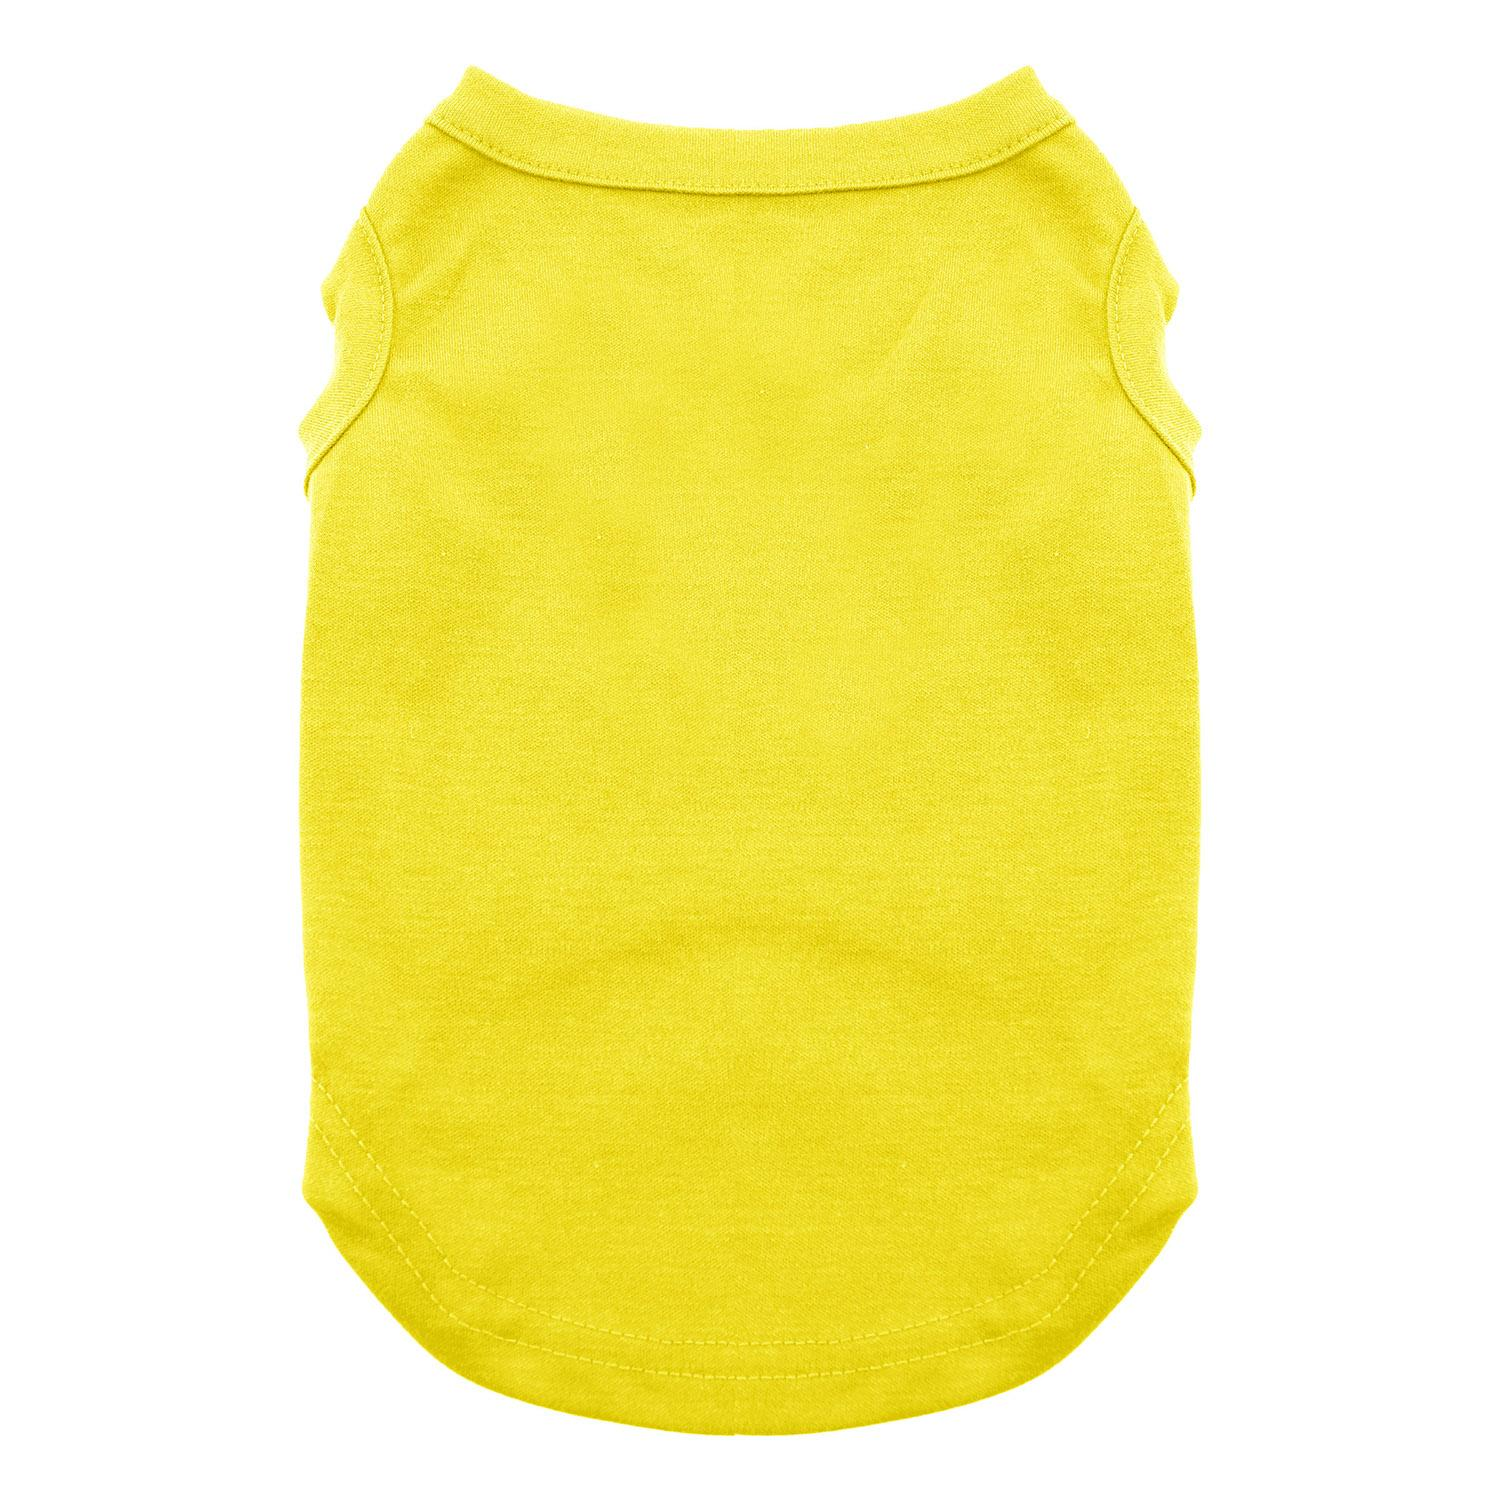 Plain Dog and Cat Shirt - Yellow